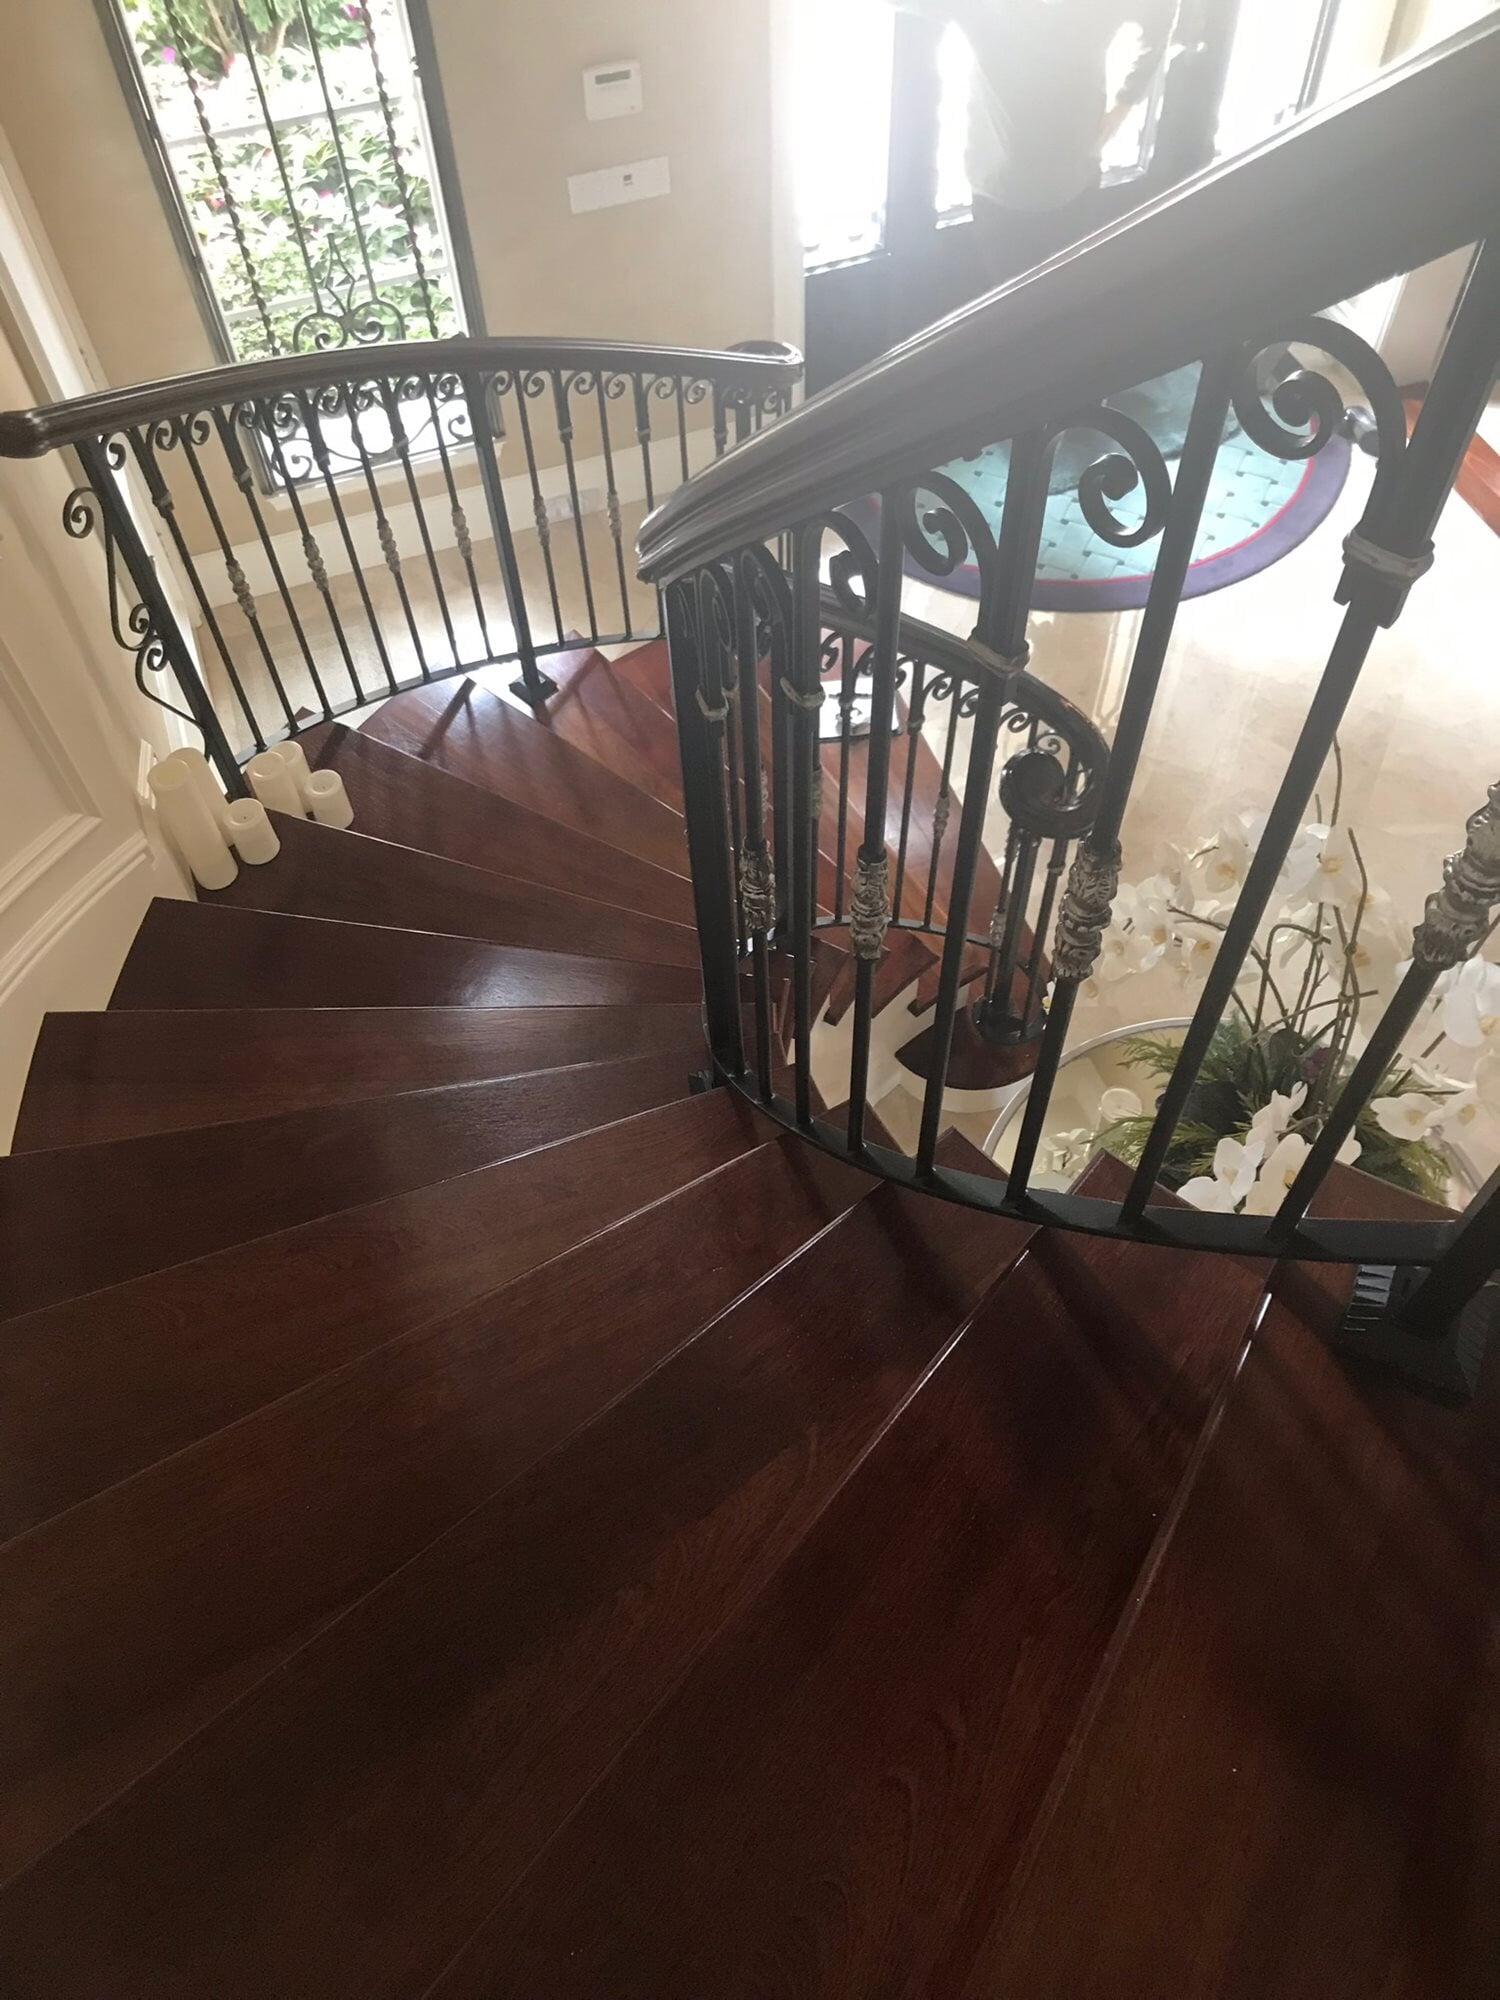 Spiral wood stairs in Juno Beach, FL from Floors For You Kitchen & Bath